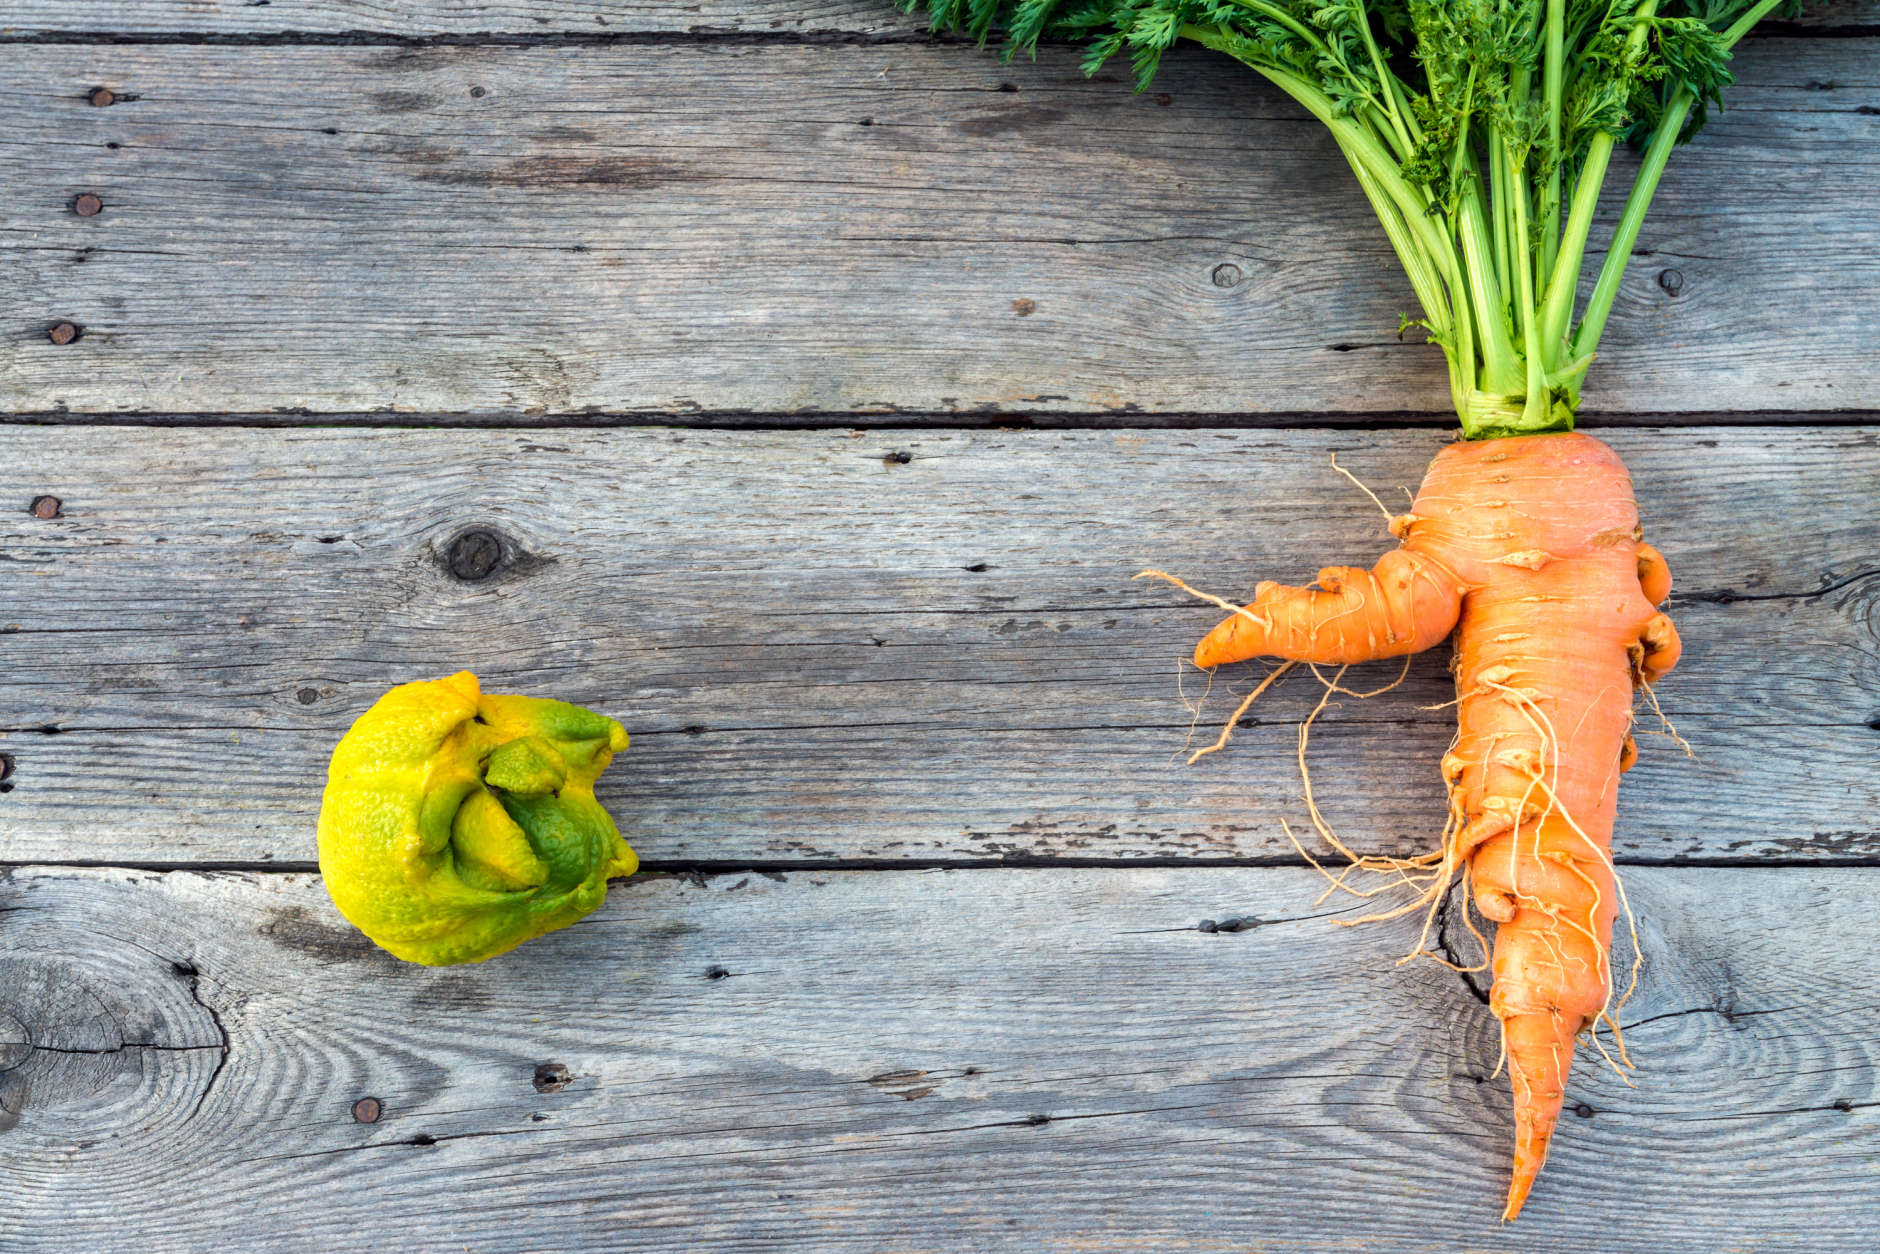 Top flat lay view of trendy ugly organic carrot and lemon from home garden on barn wood table, Australian grown.